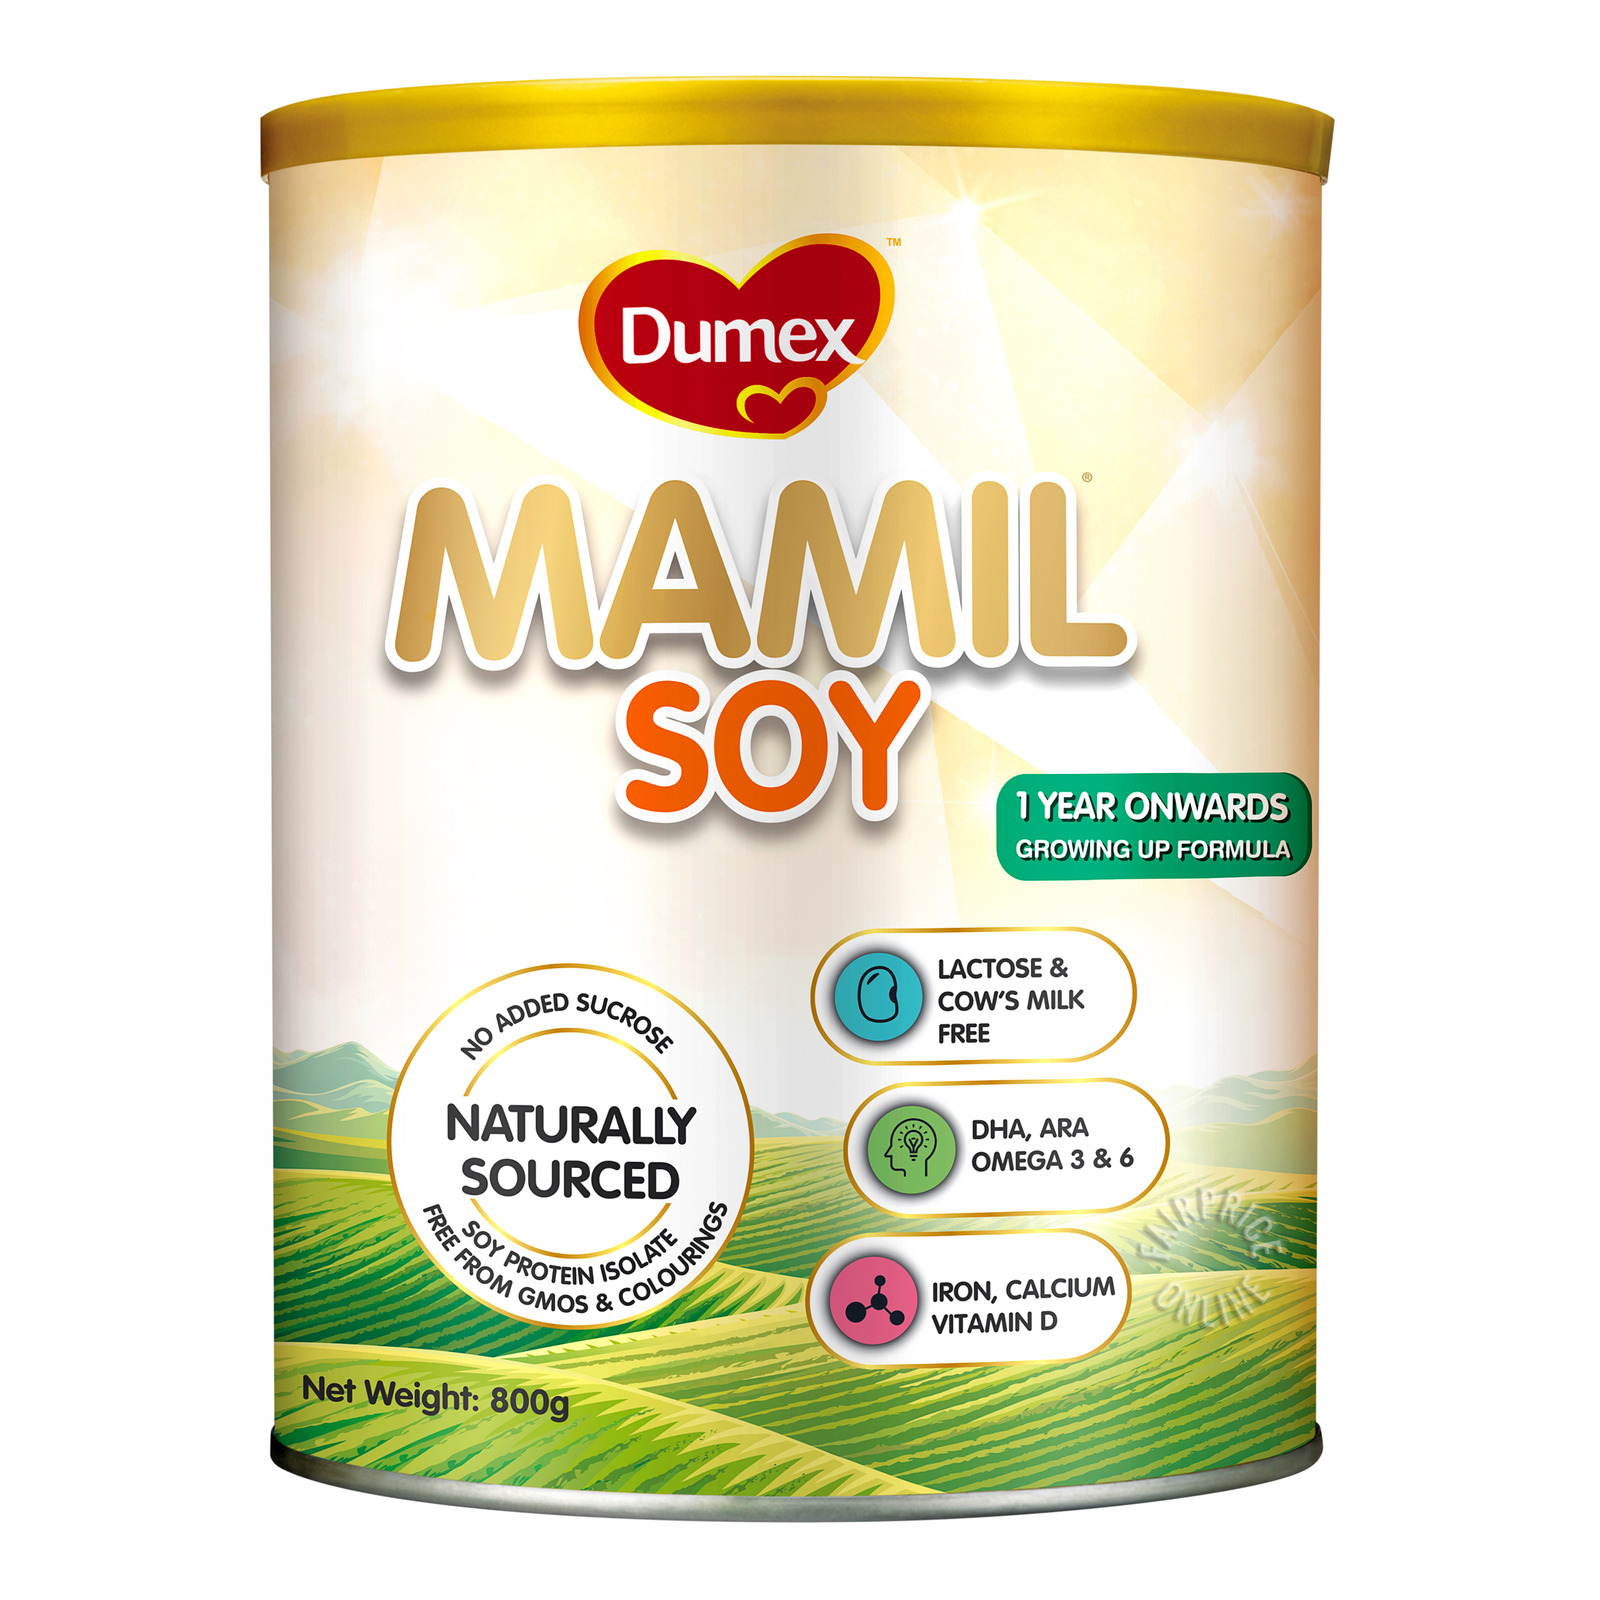 Dumex Mamil Gold Soy Growing Up Milk Formula- 1 Year Onwards